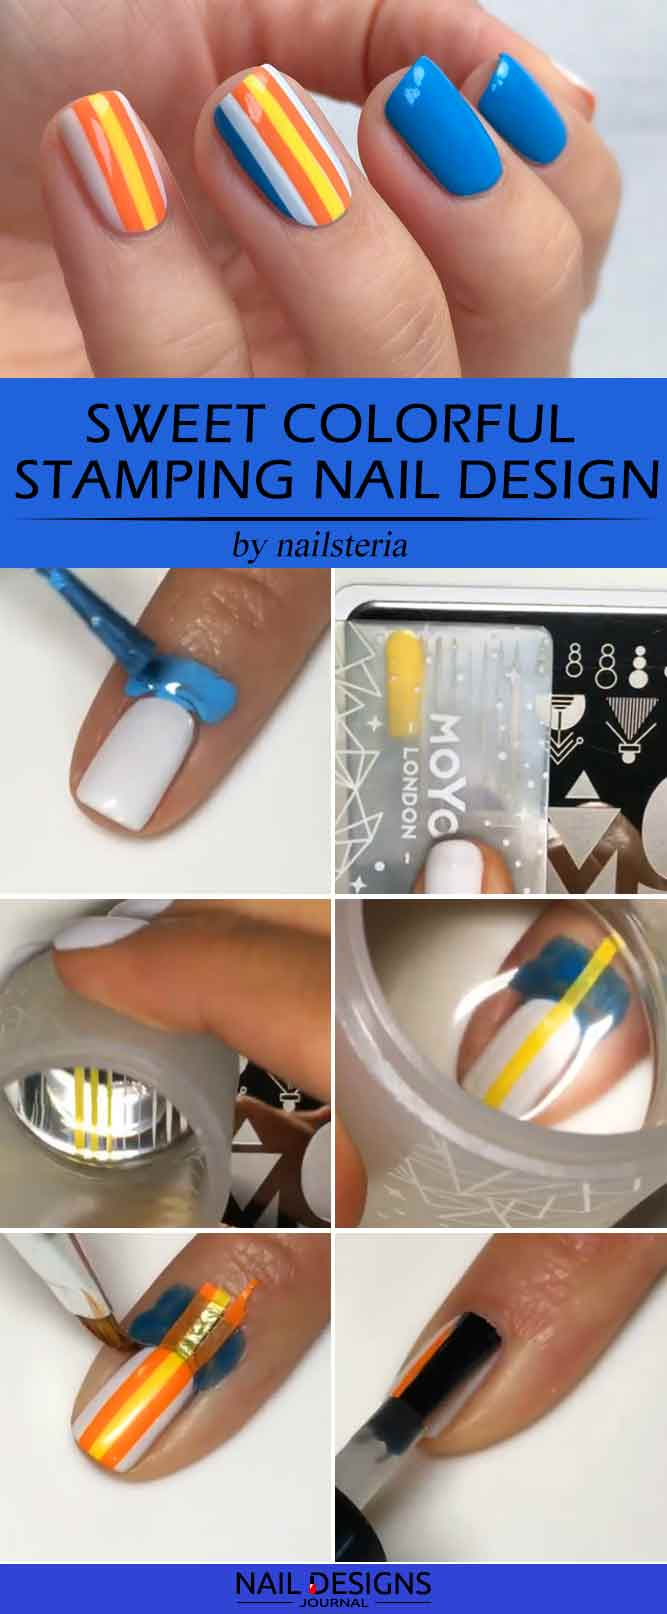 Sweet Colorful Stamping Nail Design